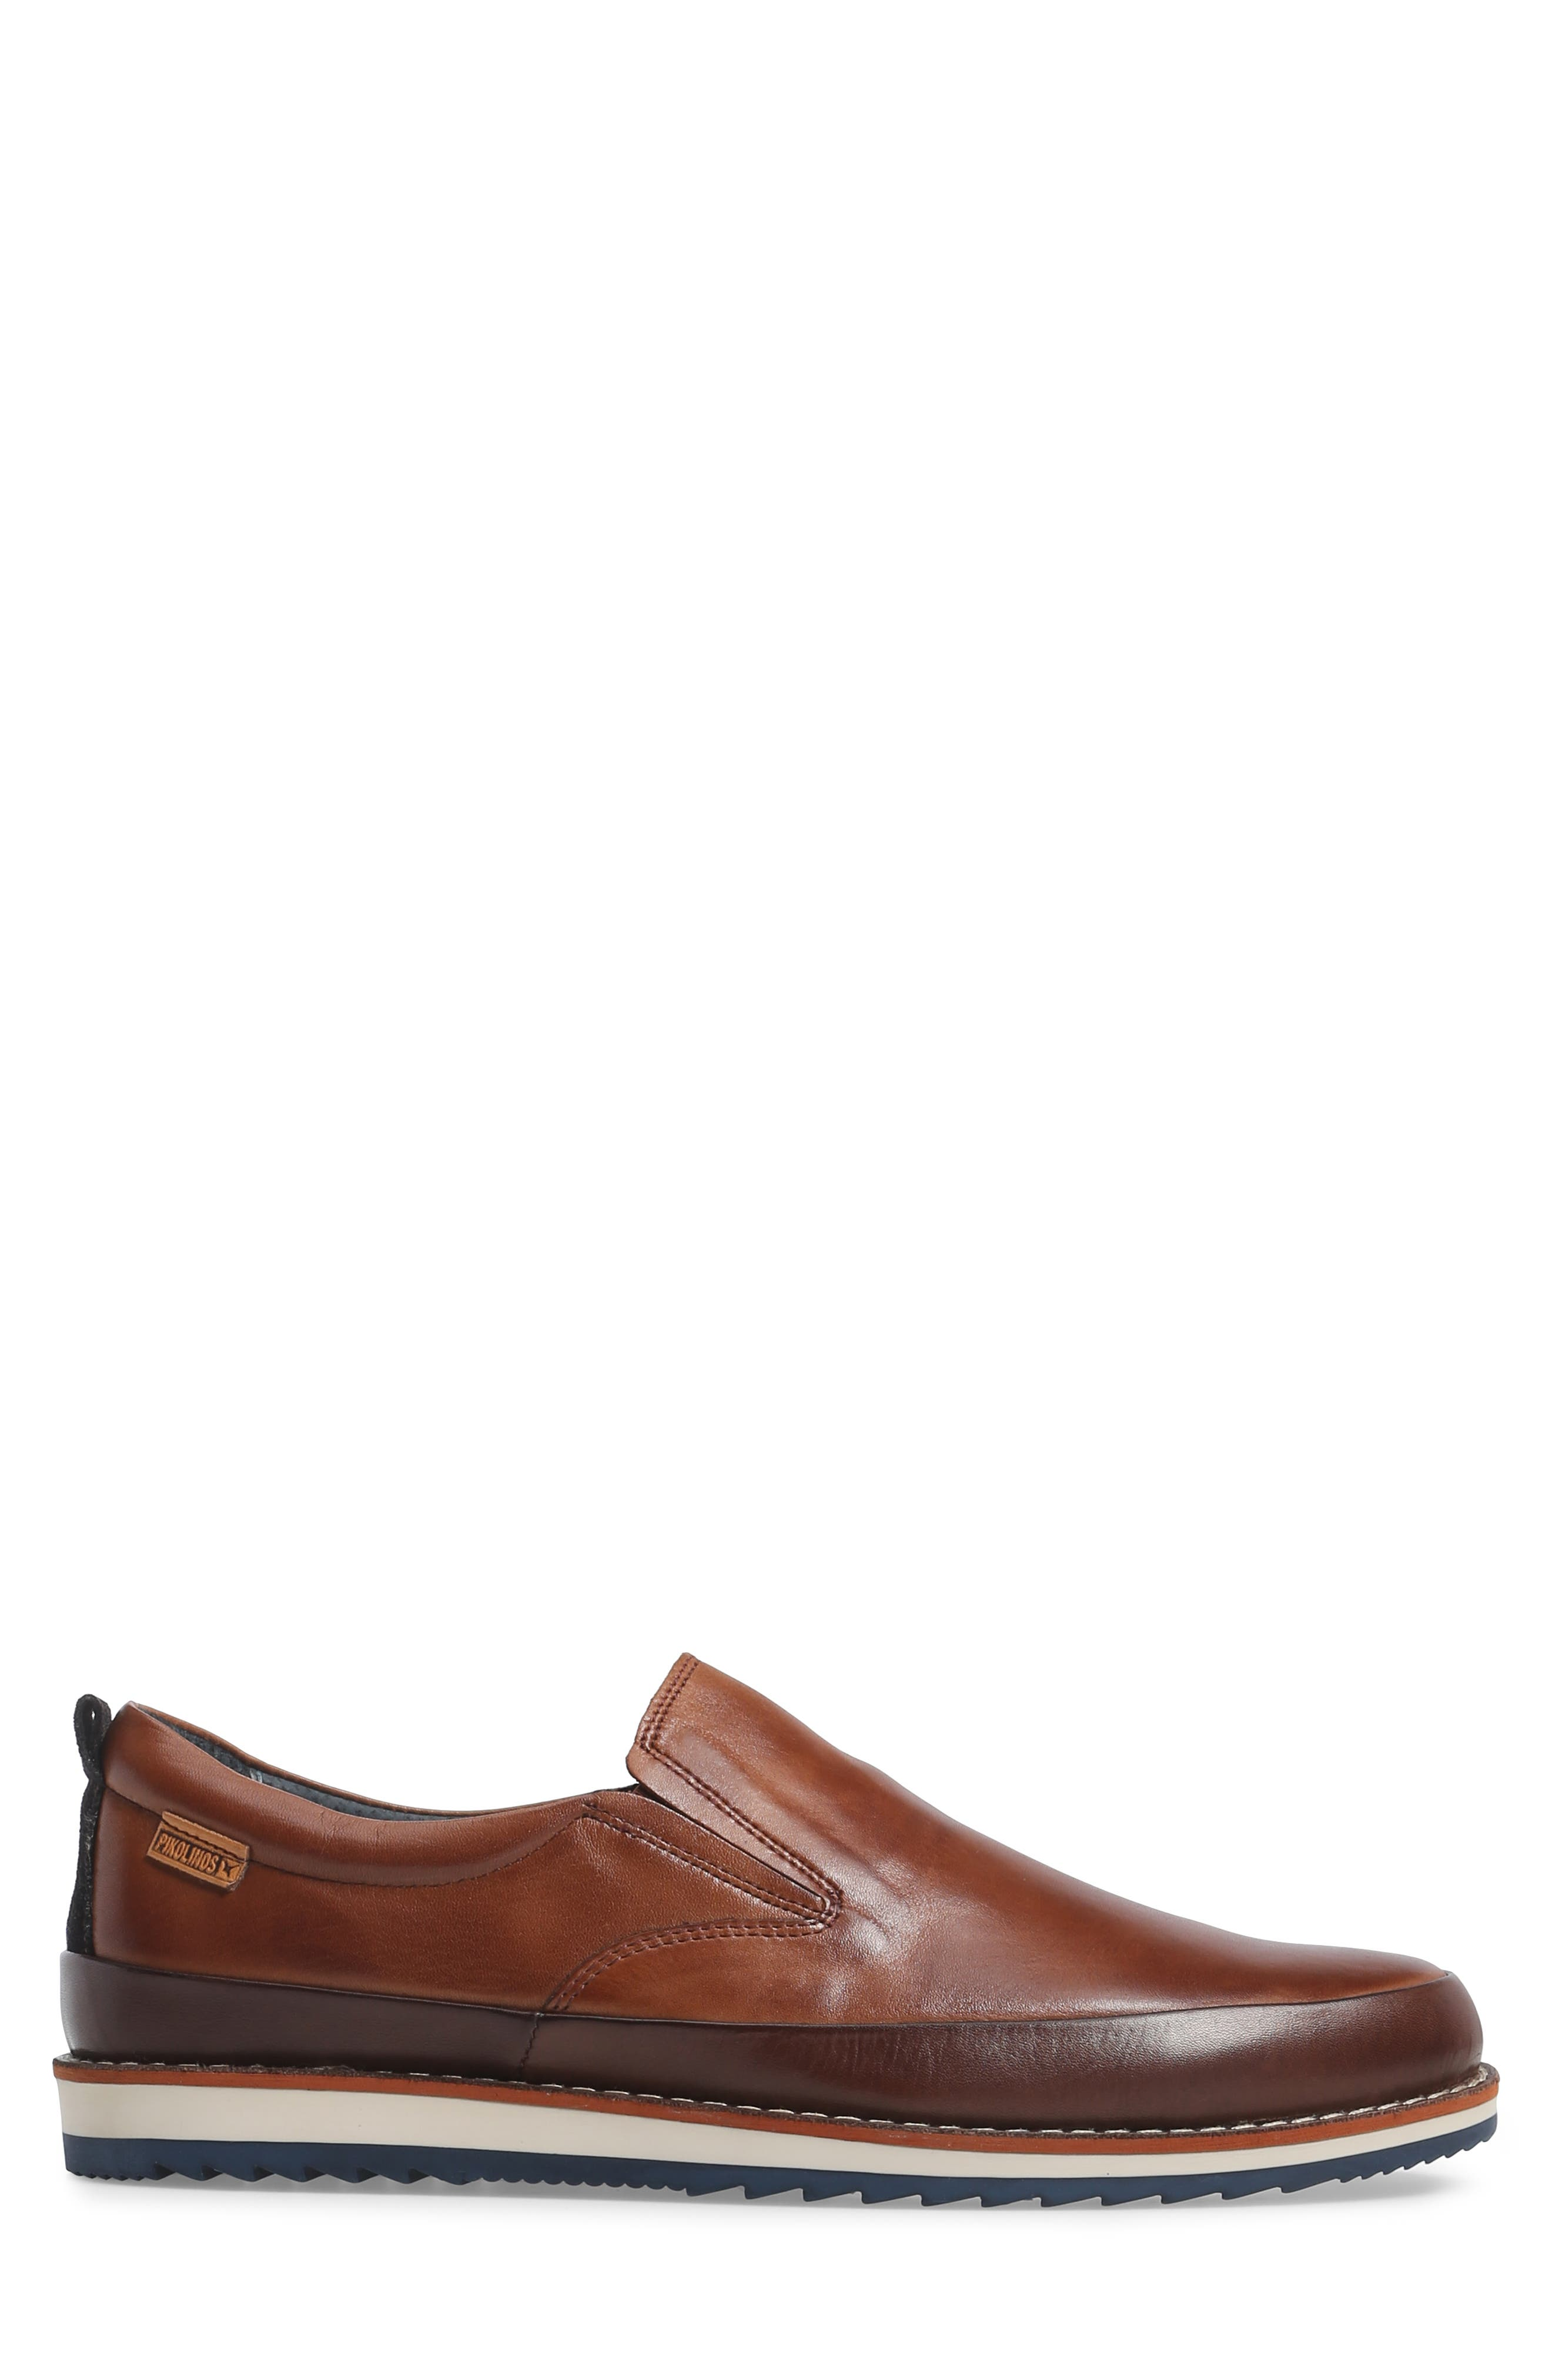 Biarritz Slip-On,                             Alternate thumbnail 3, color,                             Brown Leather